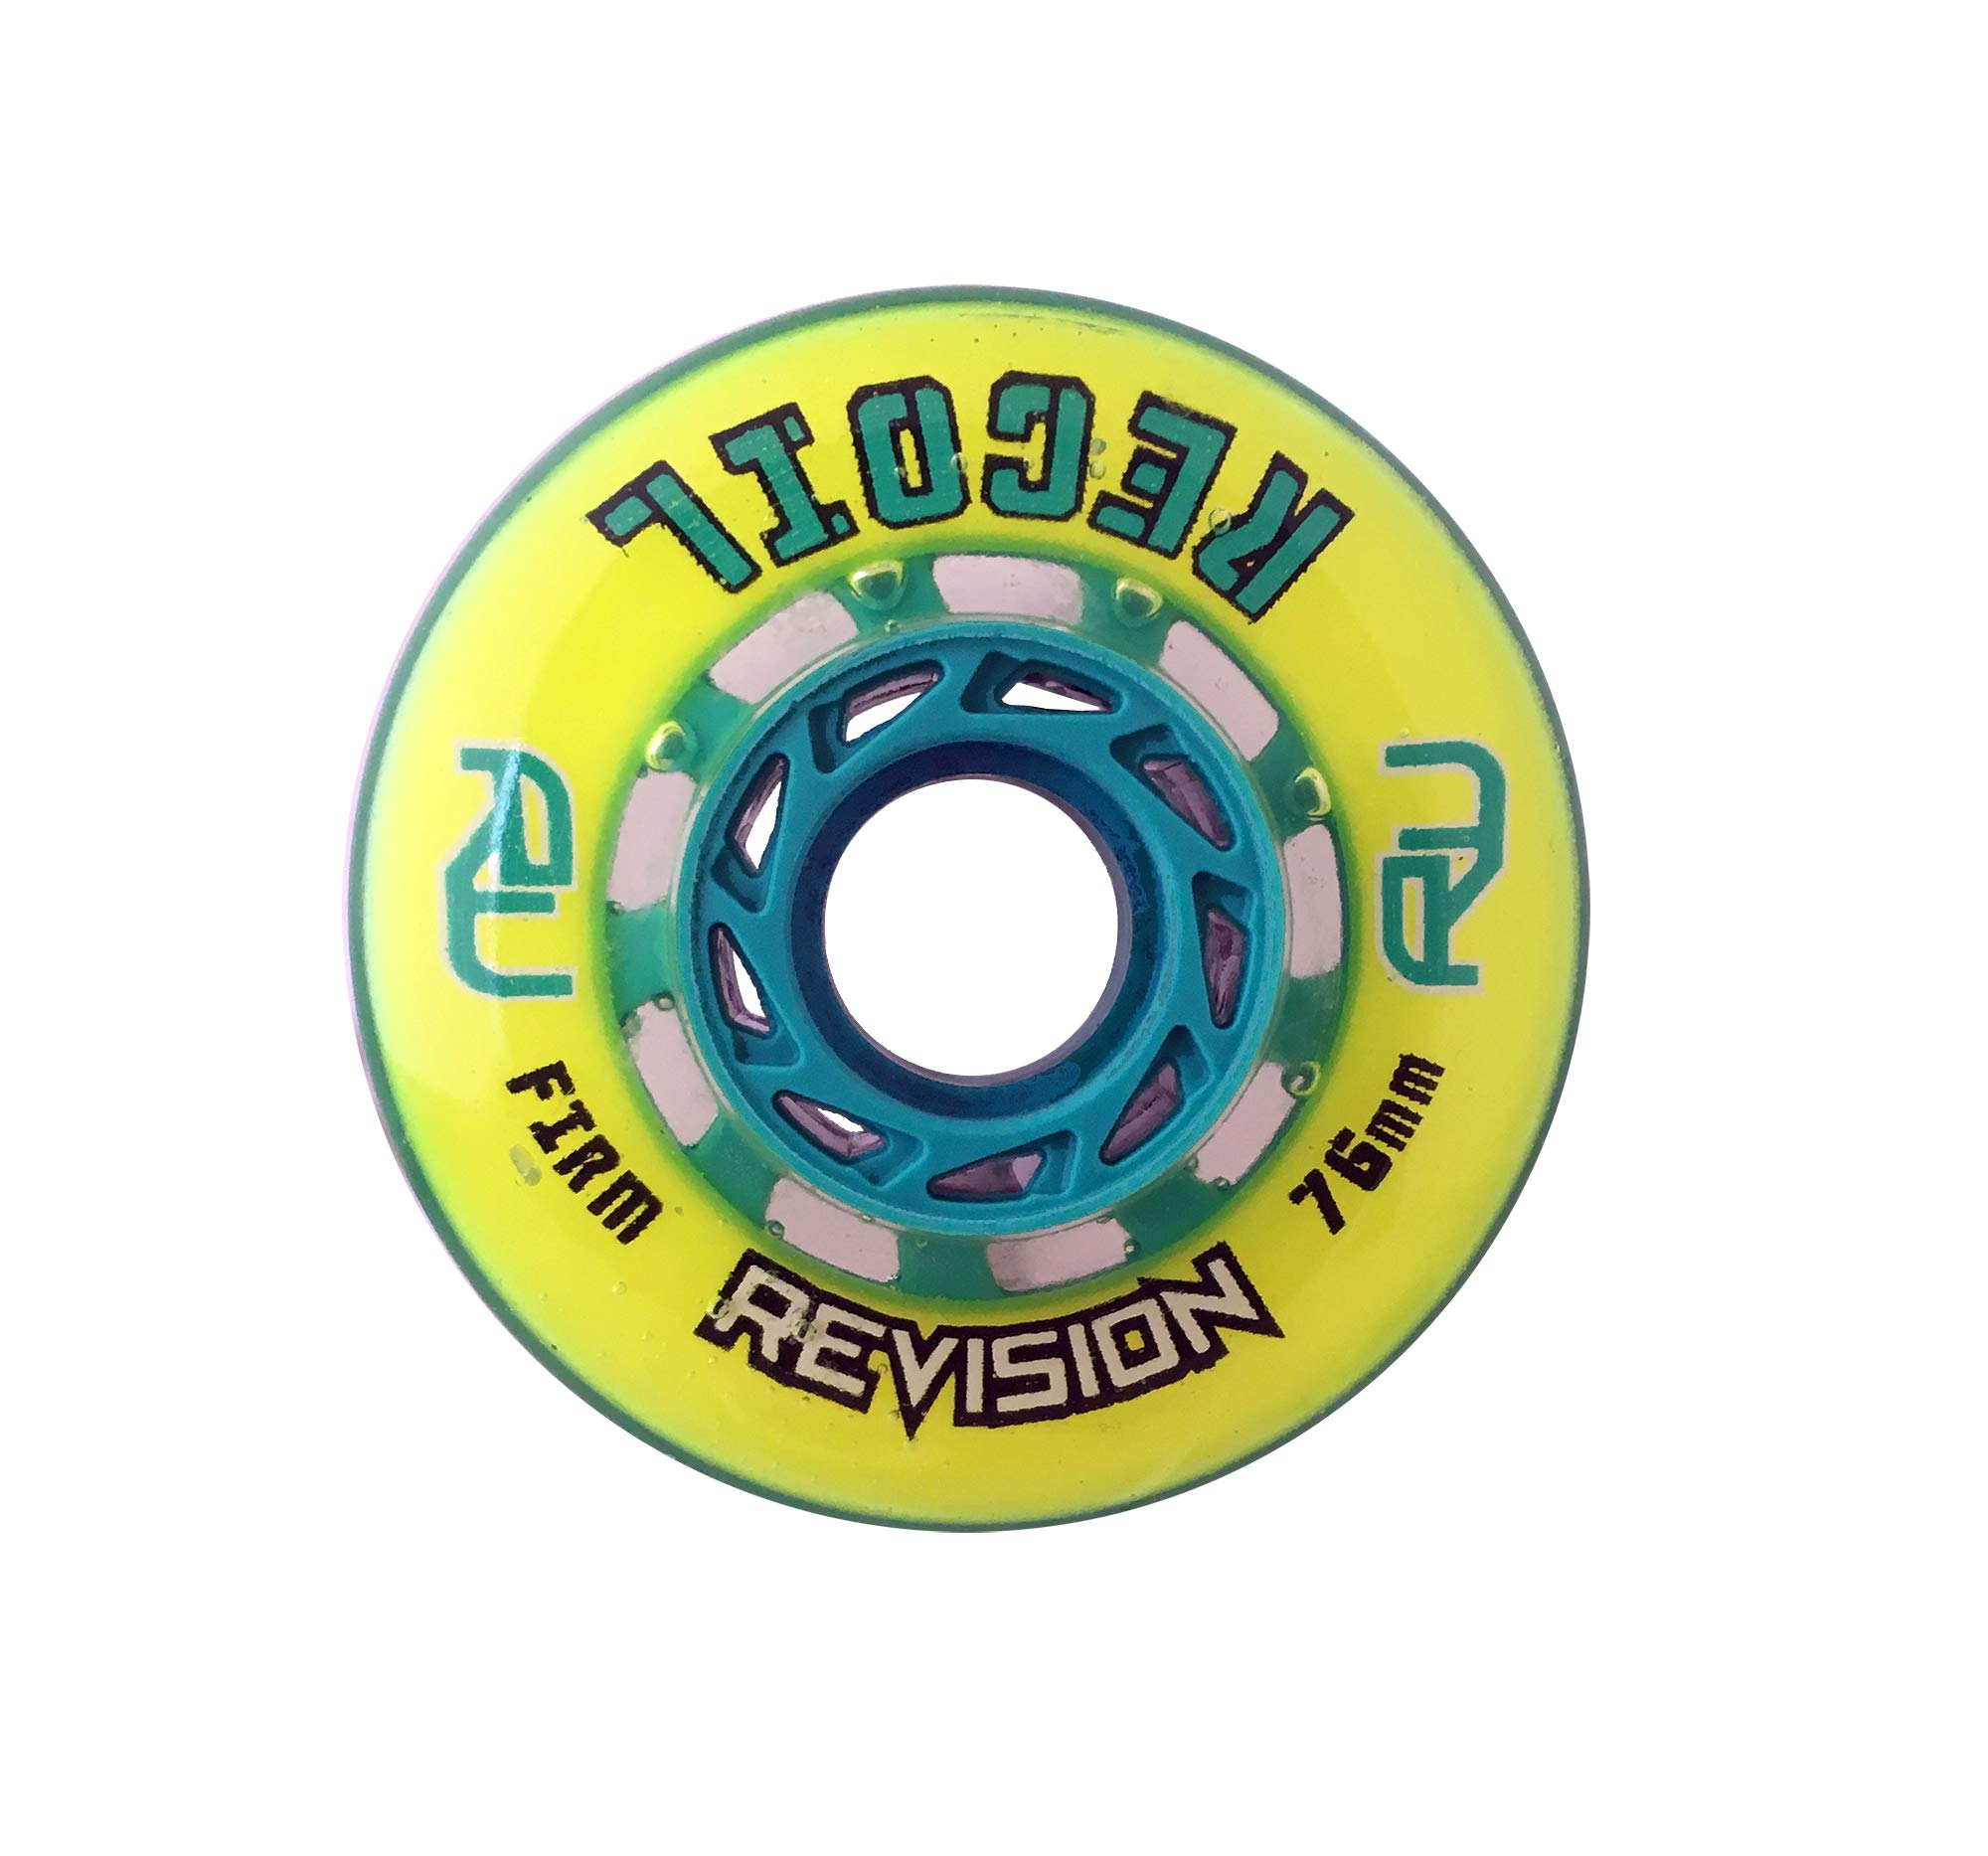 Revision Recoil Indoor Inline Roller Hockey Wheel - 74A - 76 Firm - Yellow & Teal by Revision Hockey